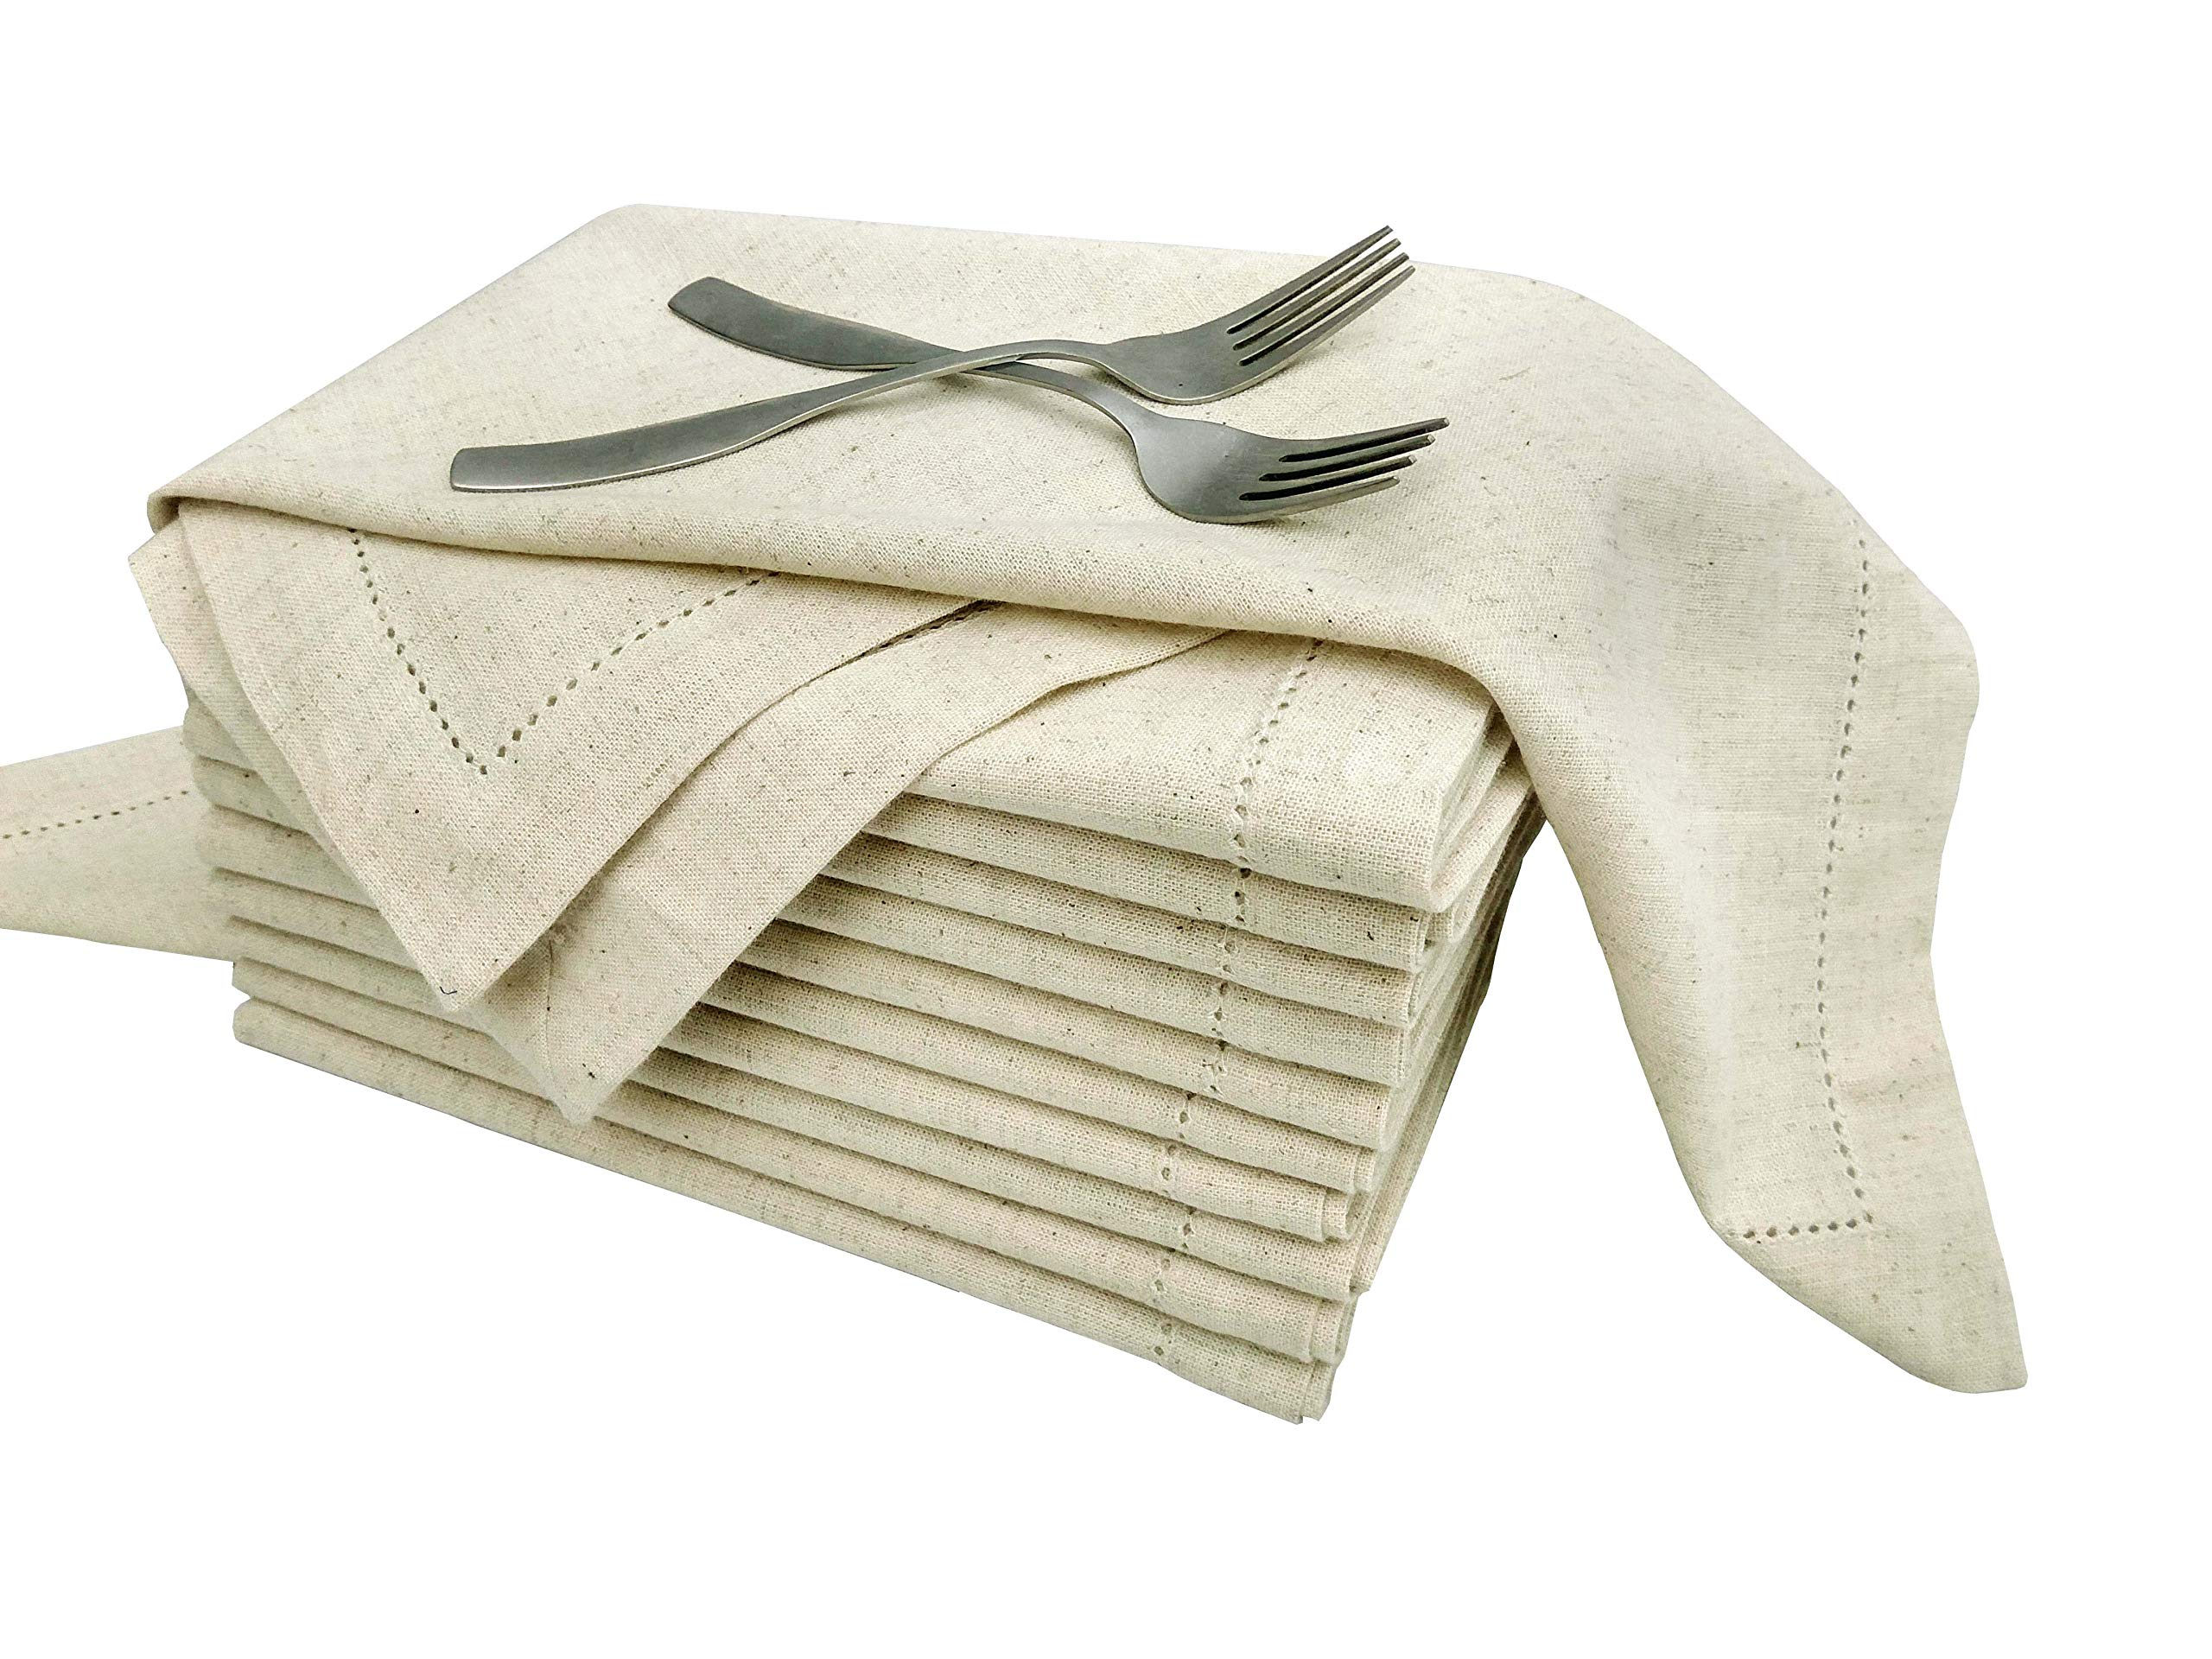 Flax by Flax (30%Linen,70% cotton) Unique Designer Premium Hemstitched Dinner Napkins 20x20, Natural Color With Rustic Linen Look Offered By Linen Clubs (SET of 12 PIECES)